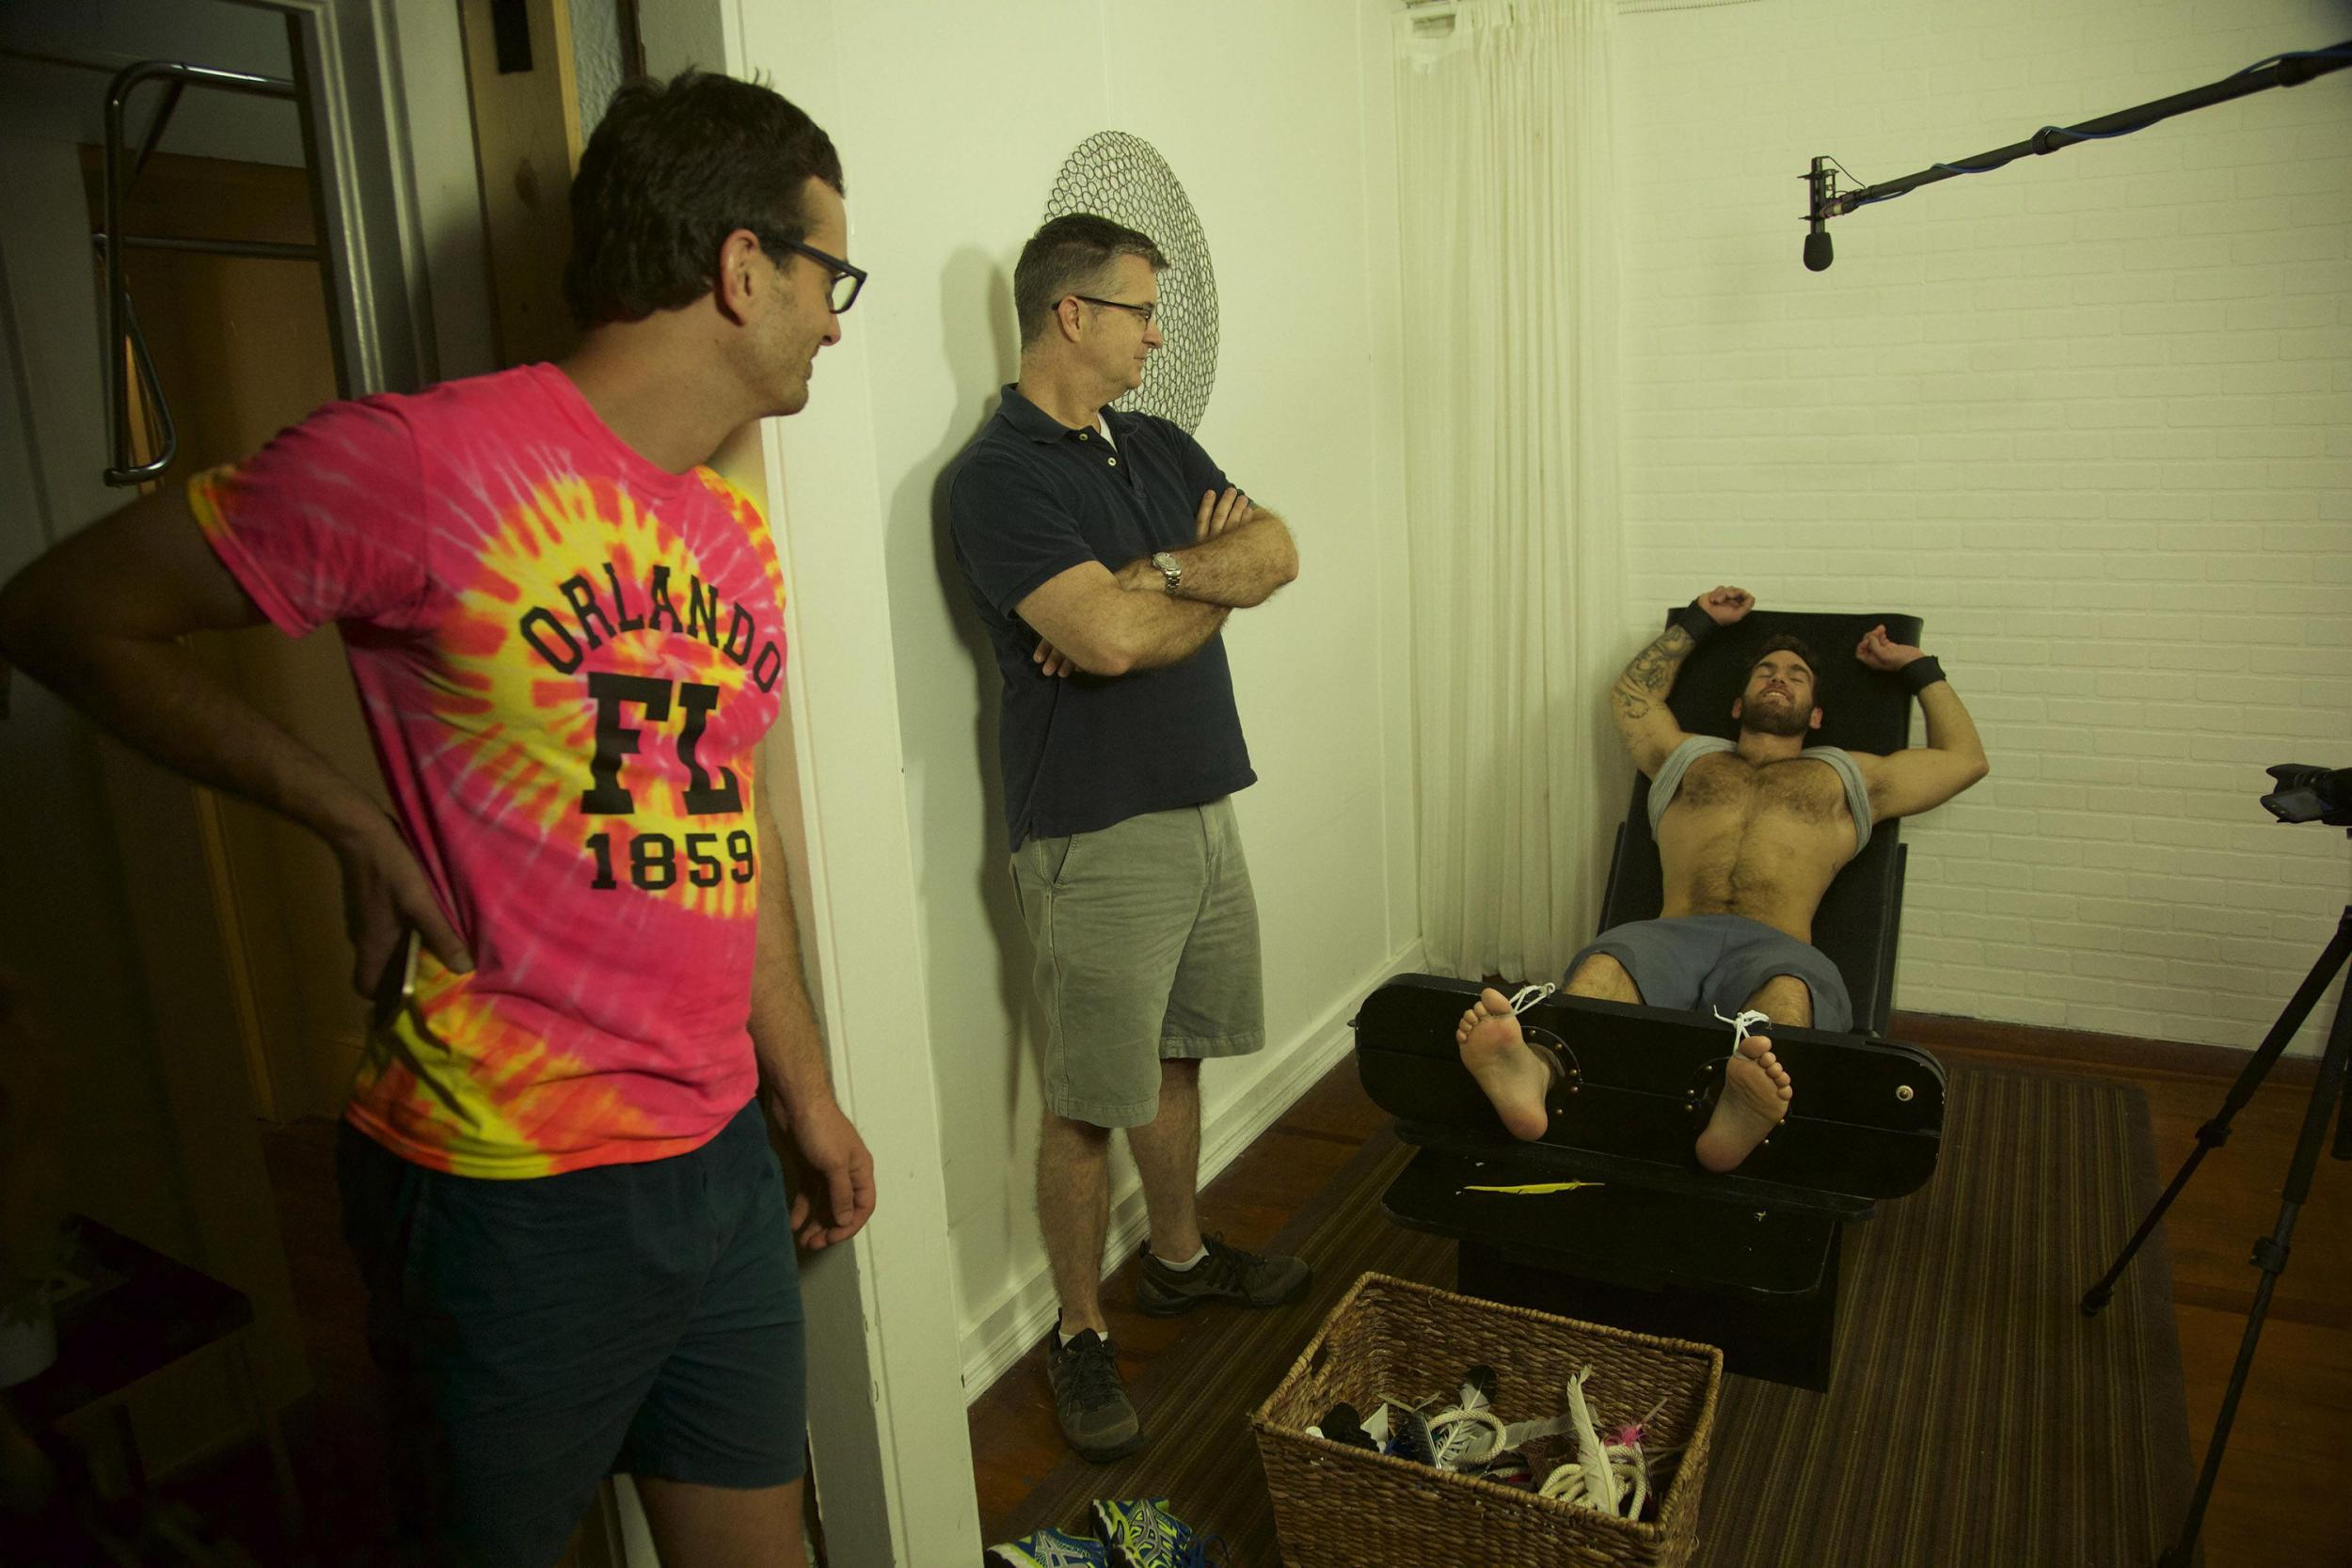 Tickled interview The competitive tickling doc that led David – The Tickle Chair